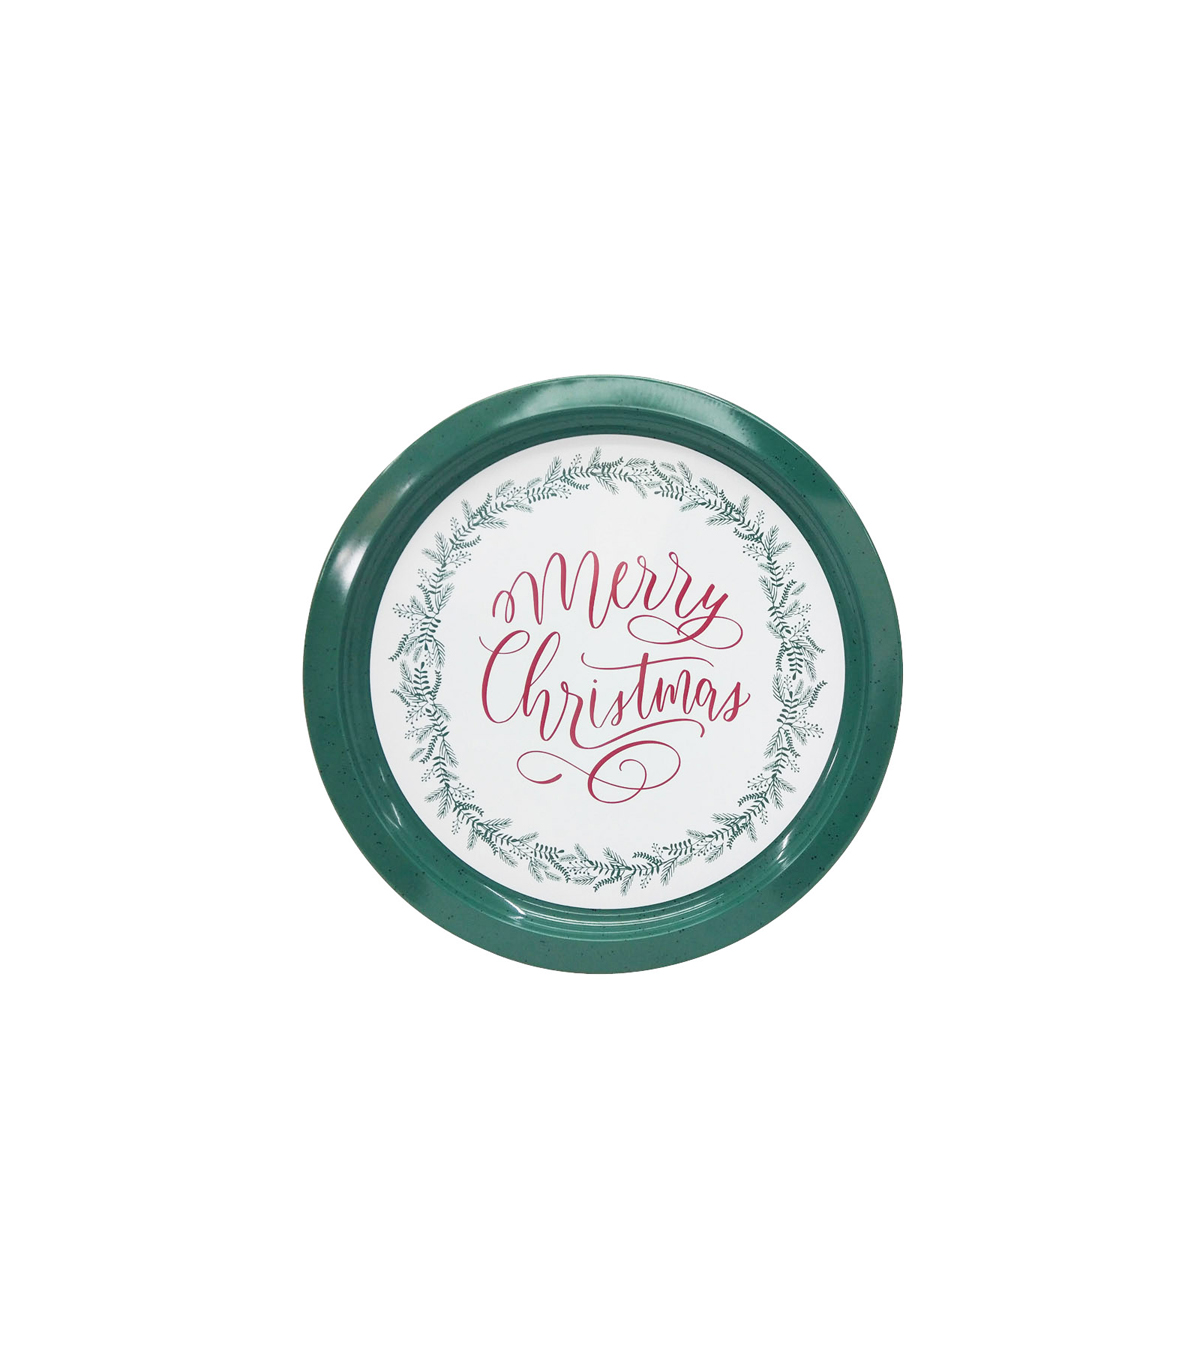 Maker\u0027s Holiday Christmas Cookie Platter-Merry Christmas